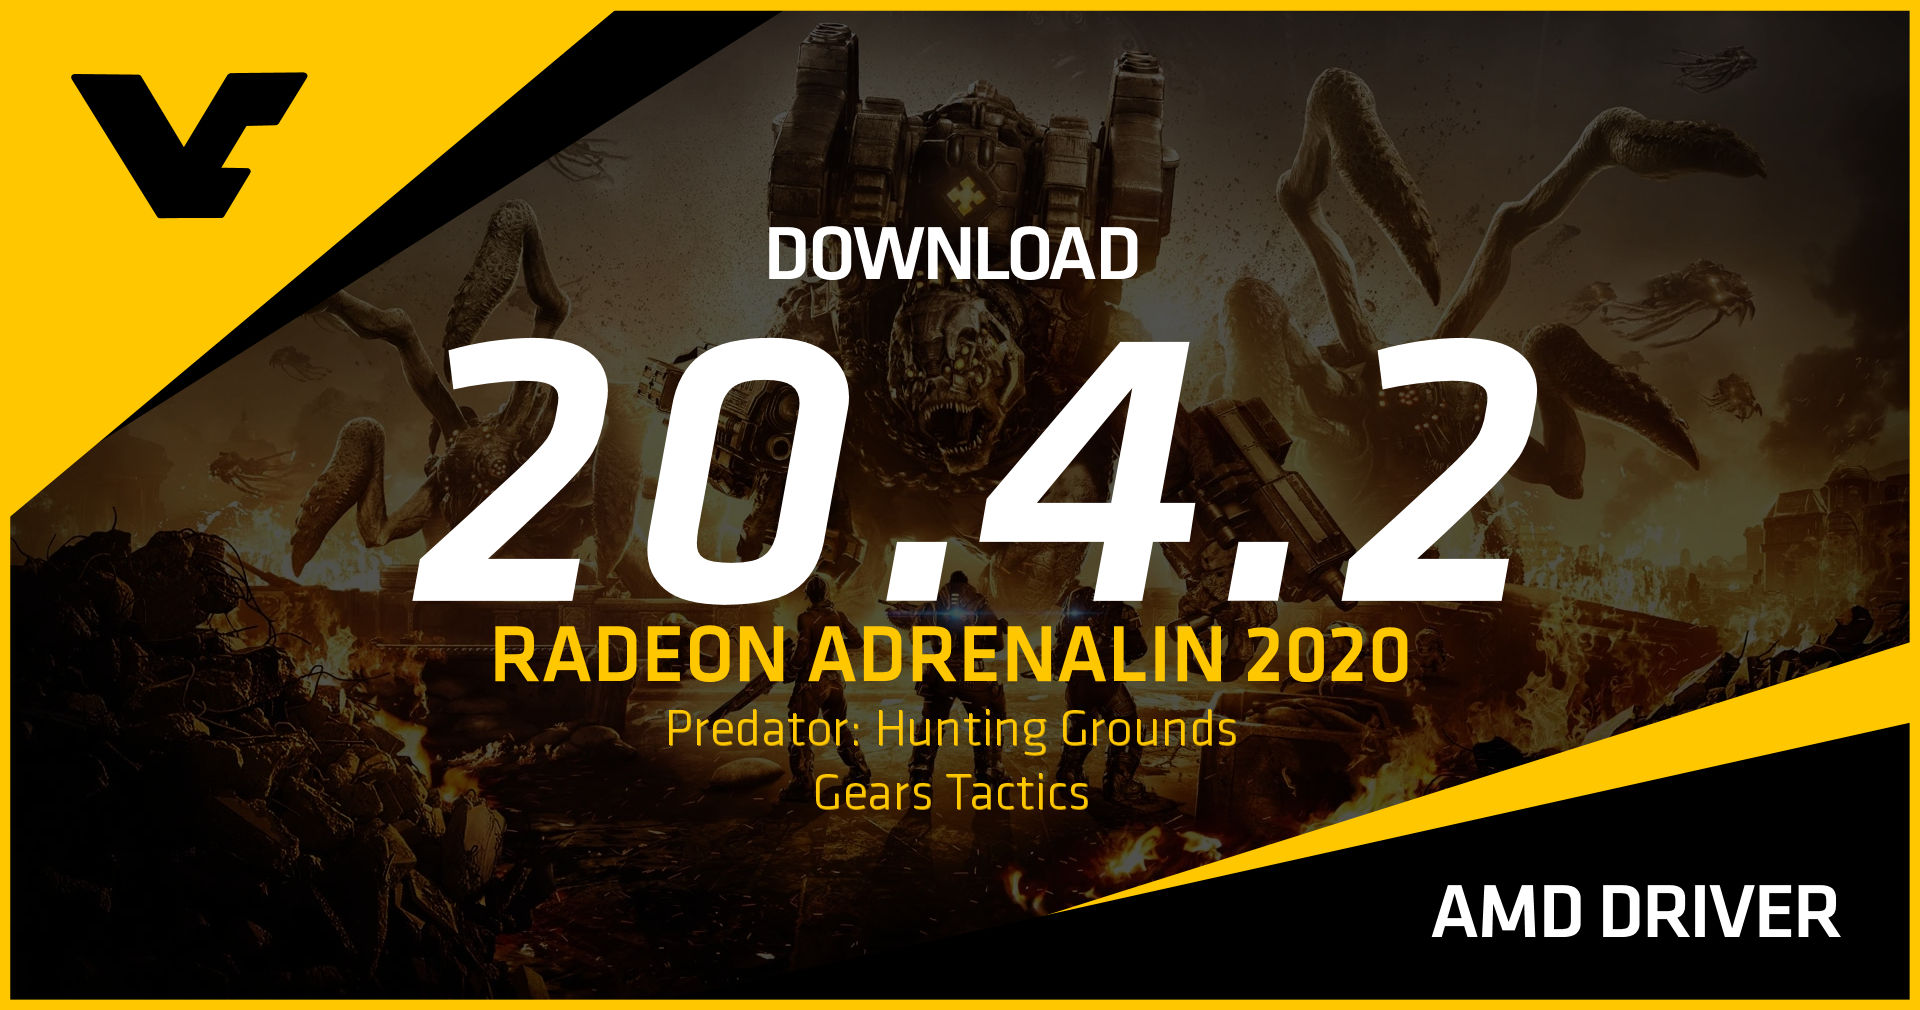 Amd Radeon Adrenalin 2020 20 4 2 Apr23 Videocardz Com